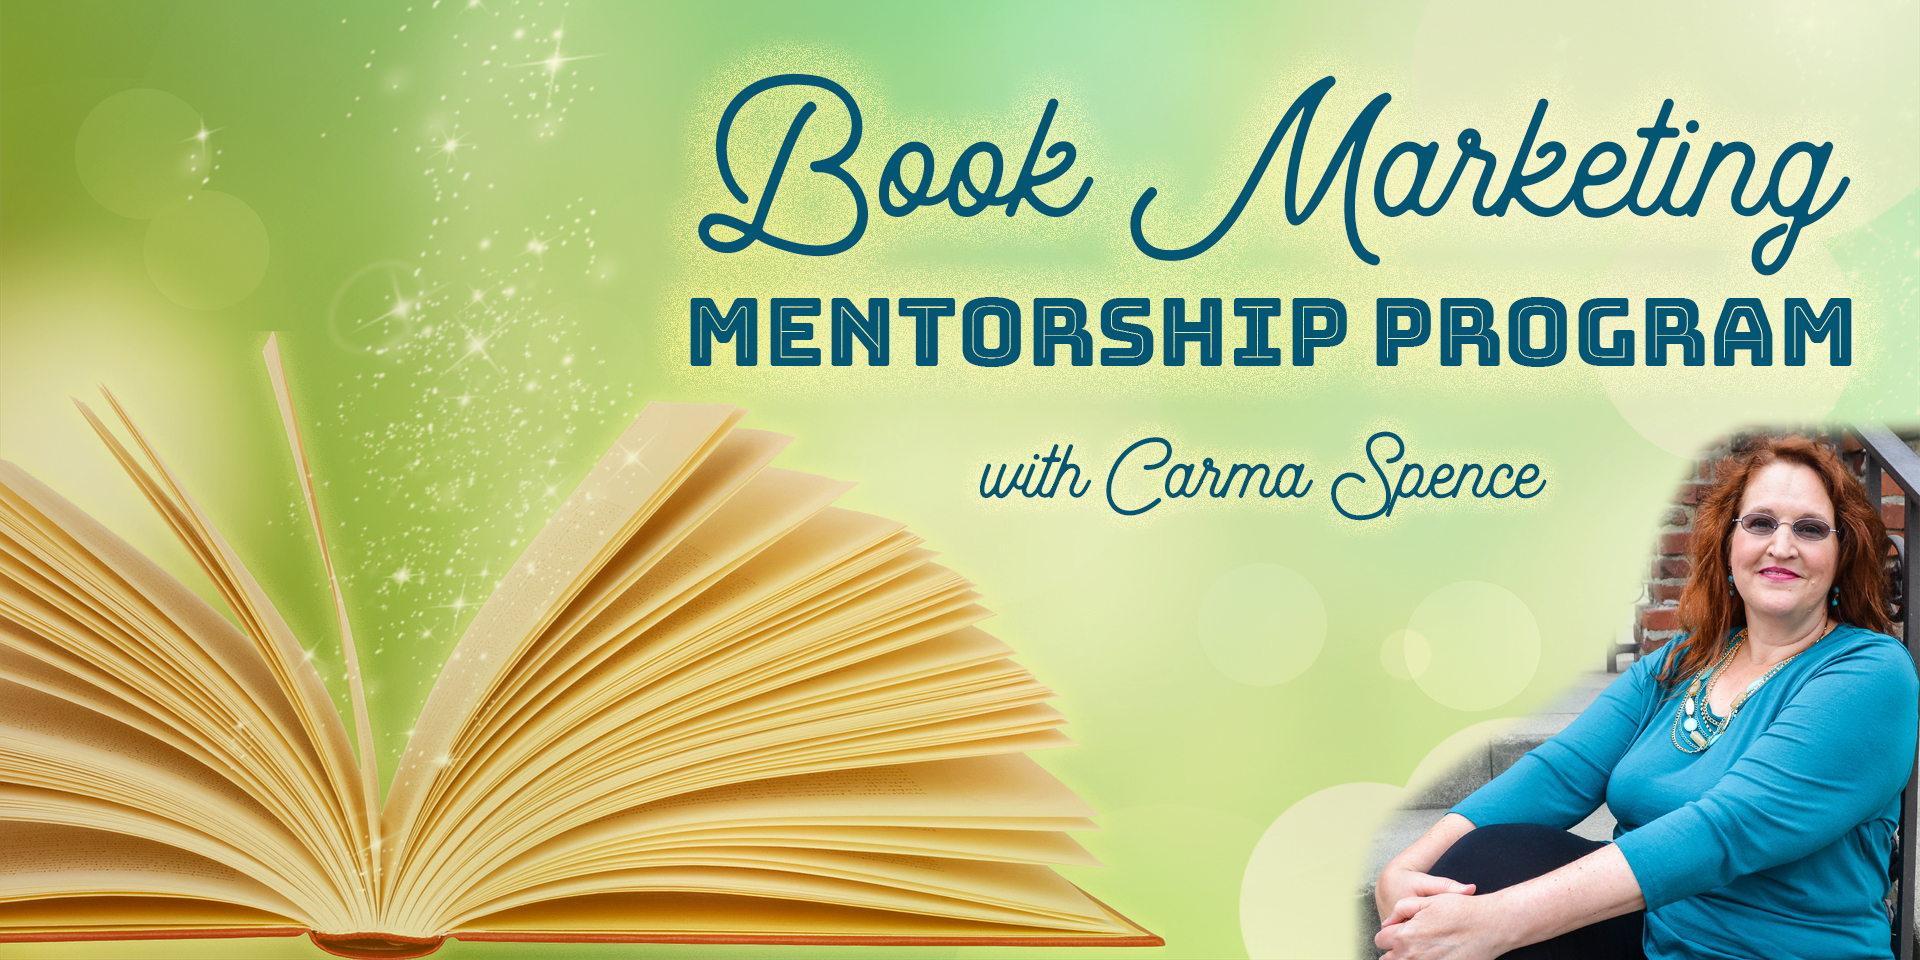 Book Marketing Mentorship Program